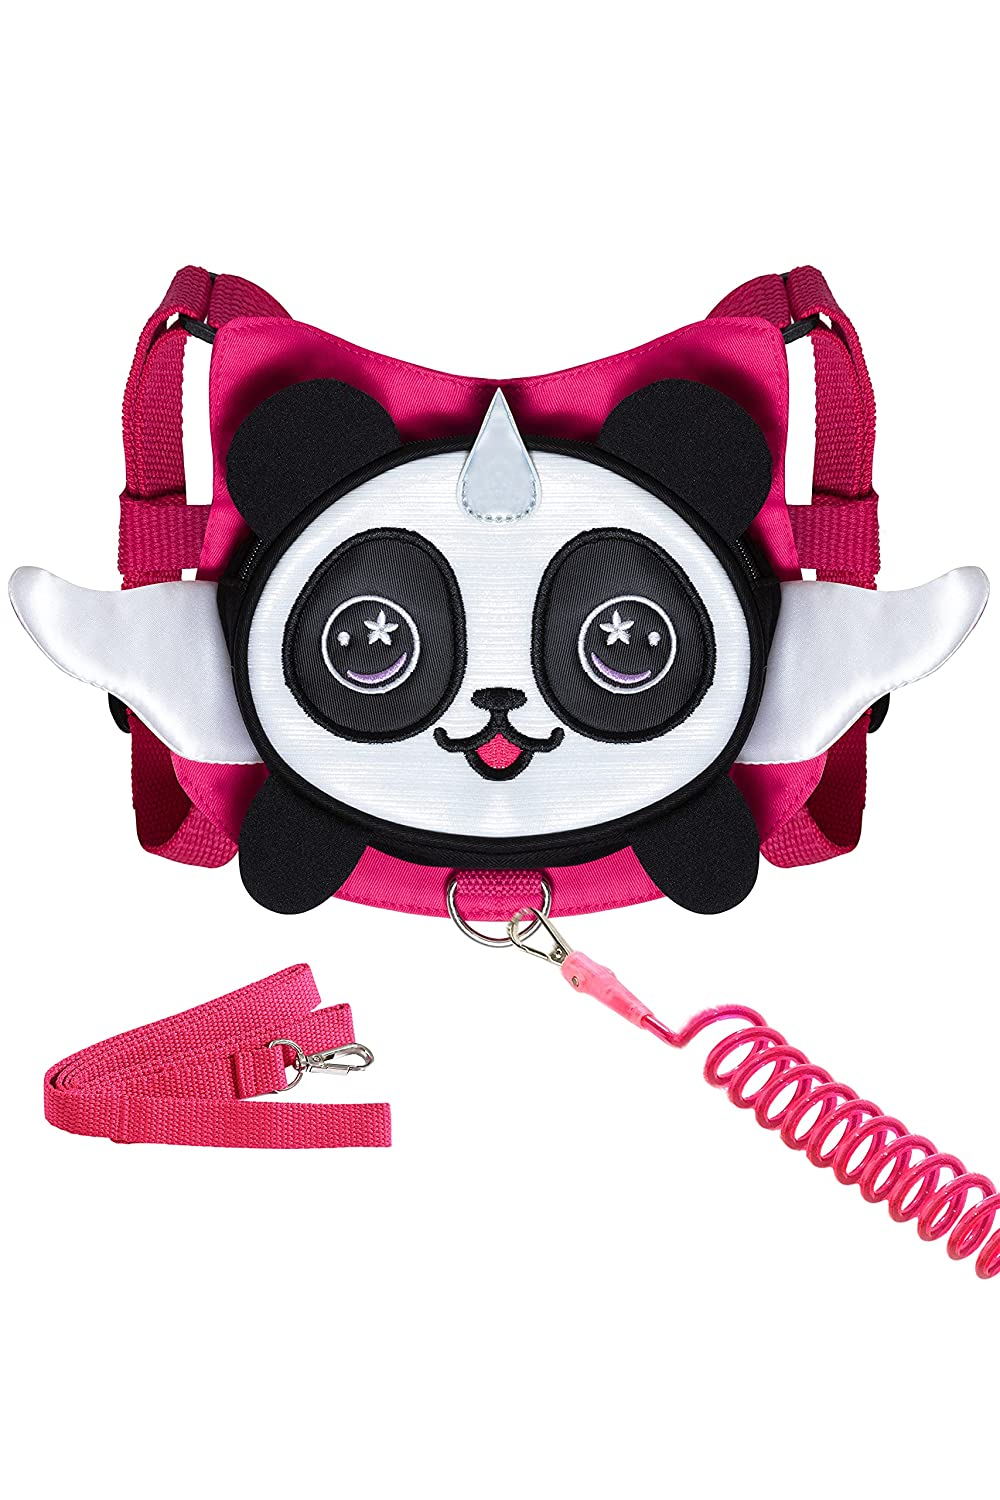 Panda Toddler Harness with Leash Kid Anti-Lost Wrist Link Leash Child Wristband (Rose)